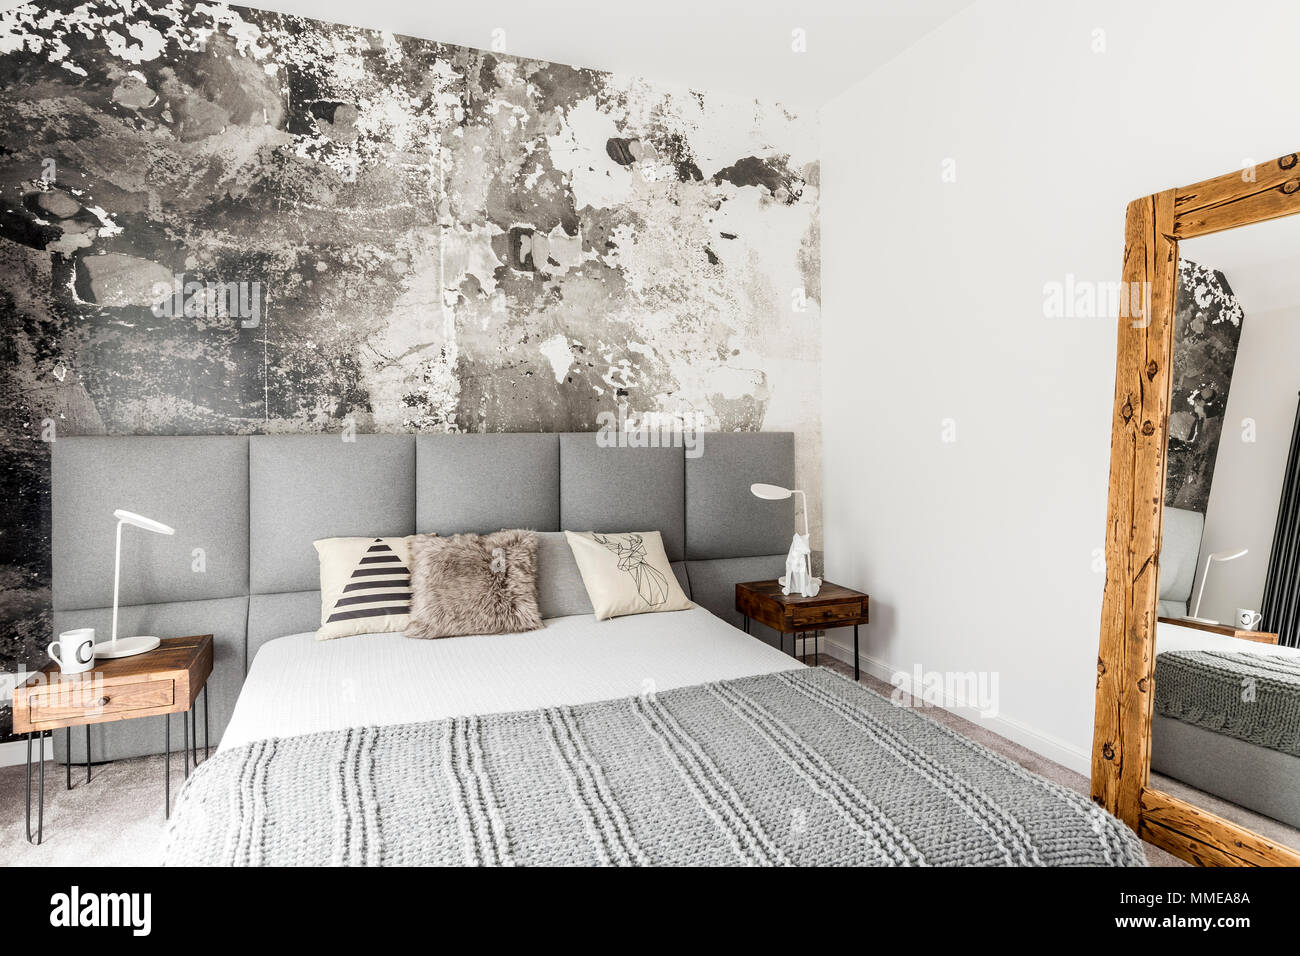 Rustic Walls Interior Gray And White Interior Of Modern Bedroom With Wooden Bedside